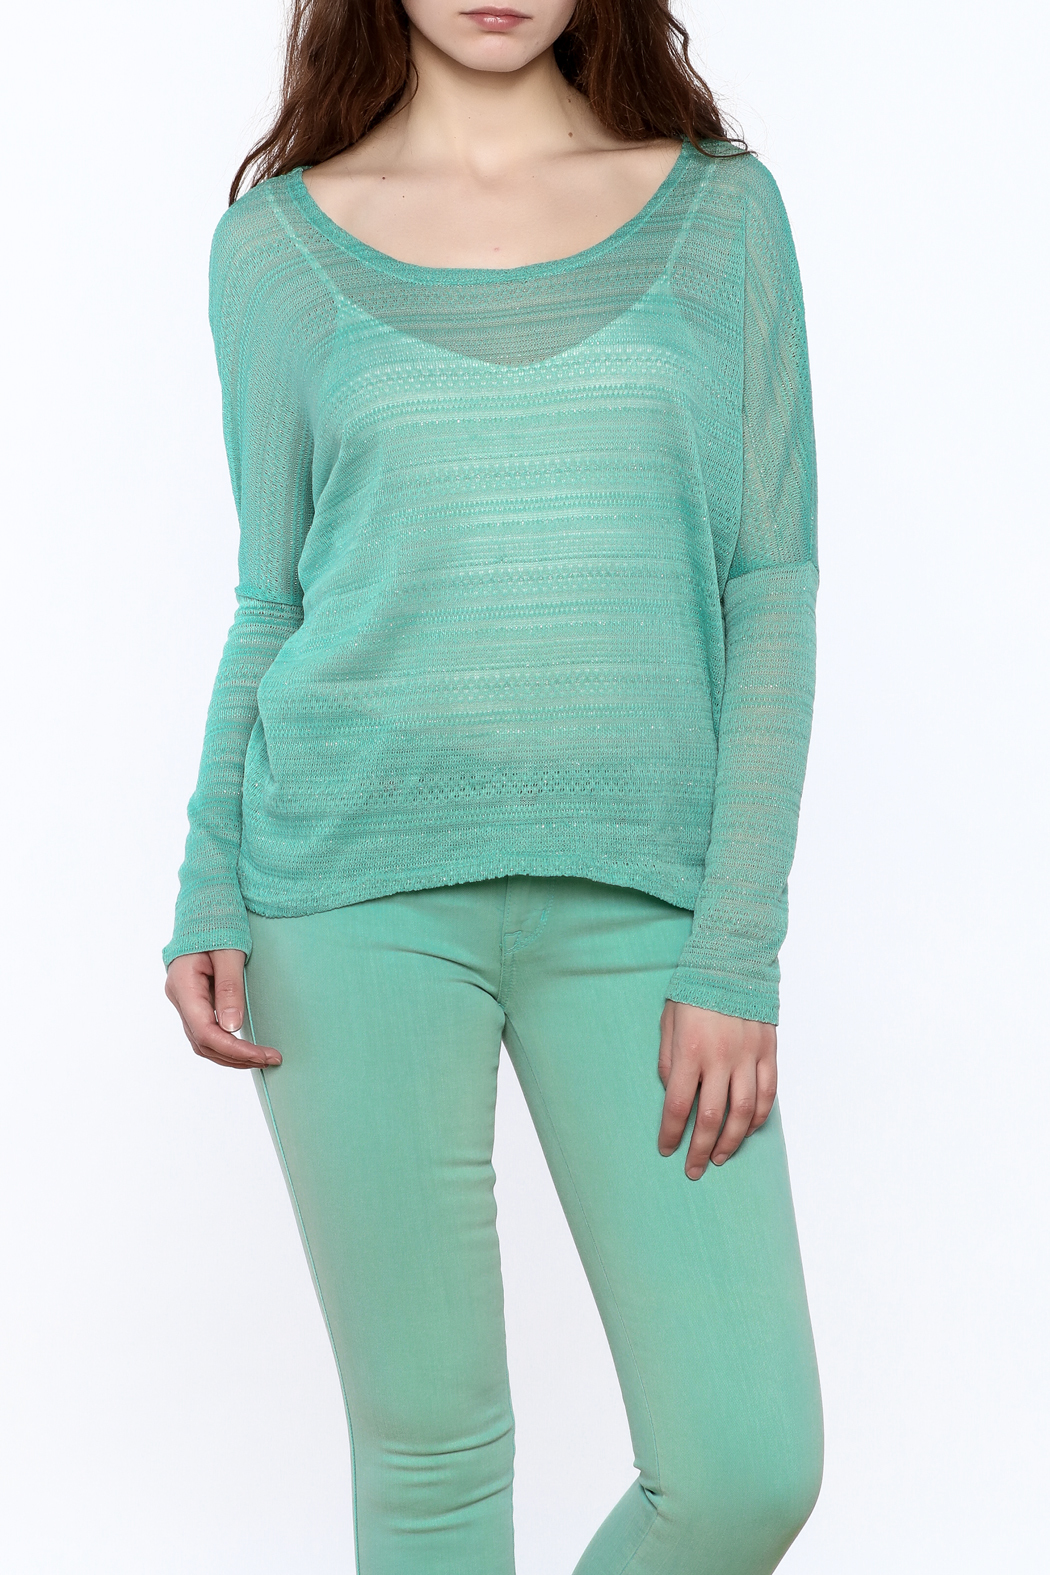 Elise Mint Green Knit Top - Main Image